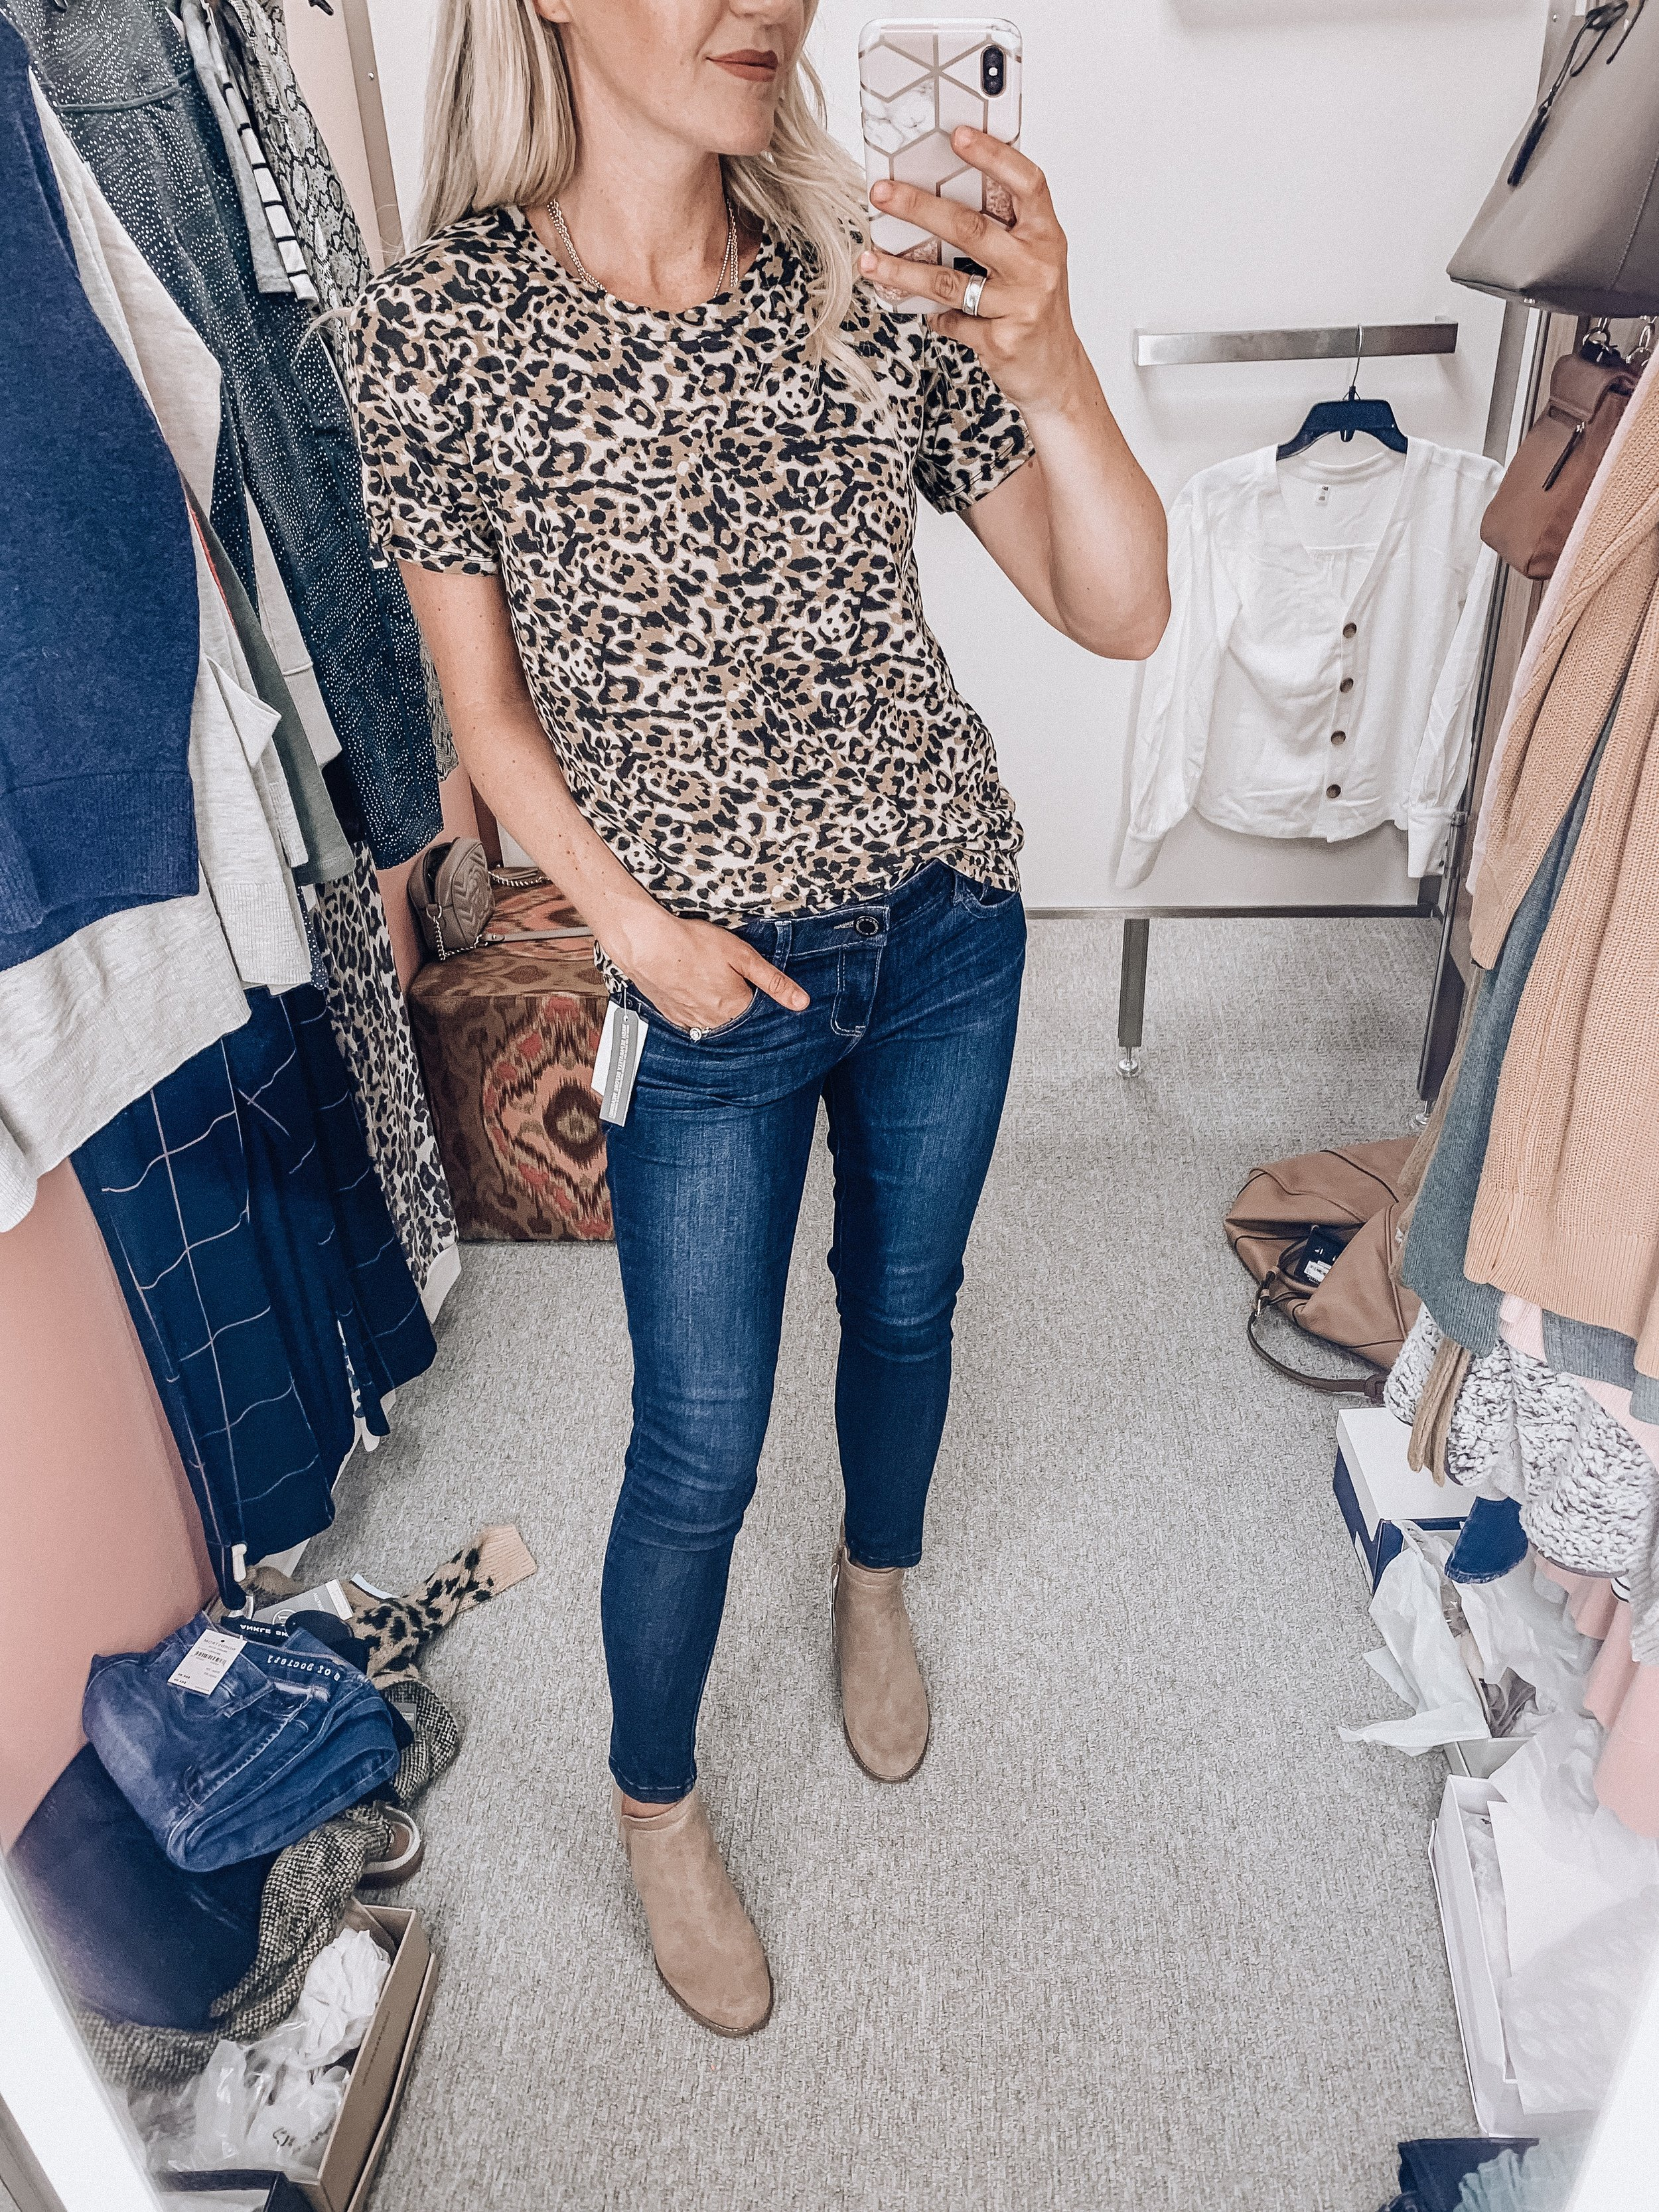 Leopard tee: size small   Jeans: size 4   Booties